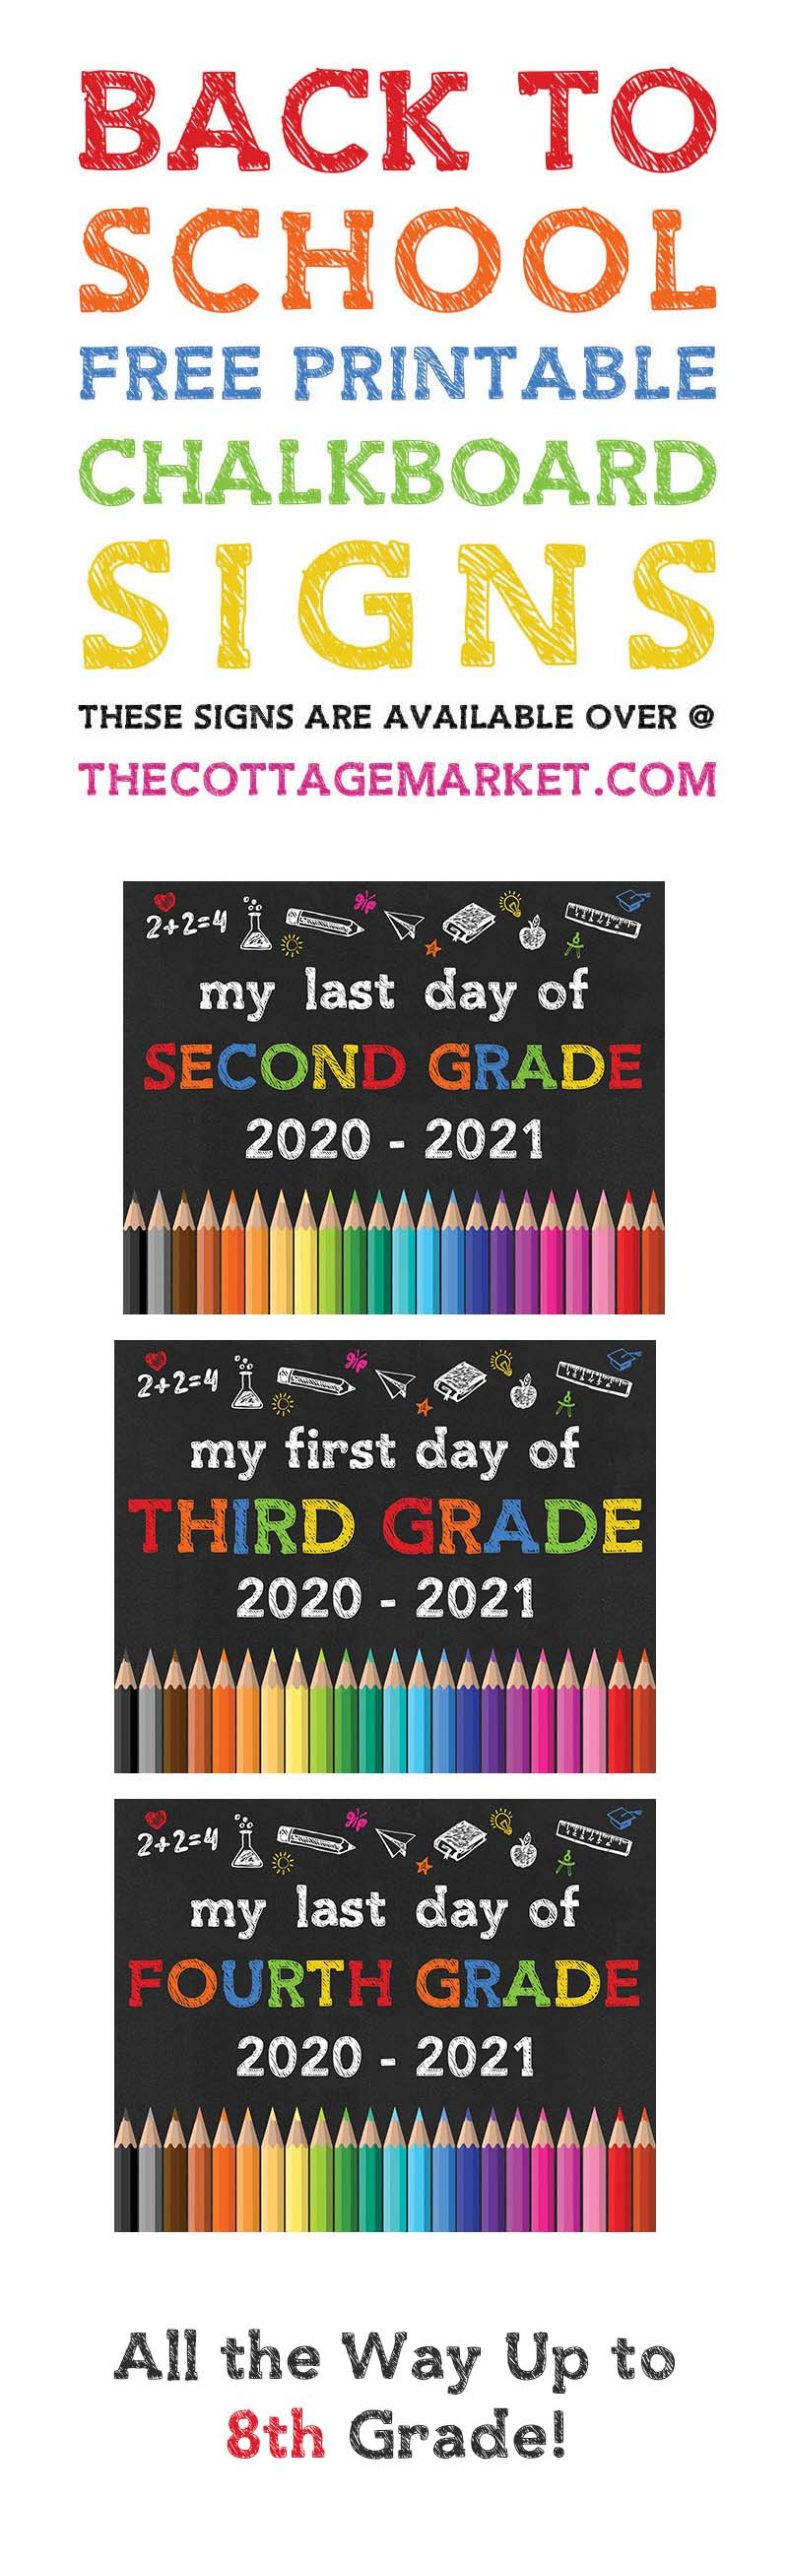 https://thecottagemarket.com/wp-content/uploads/2020/07/tcm-backtoschool-2021-t-3-scaled.jpg